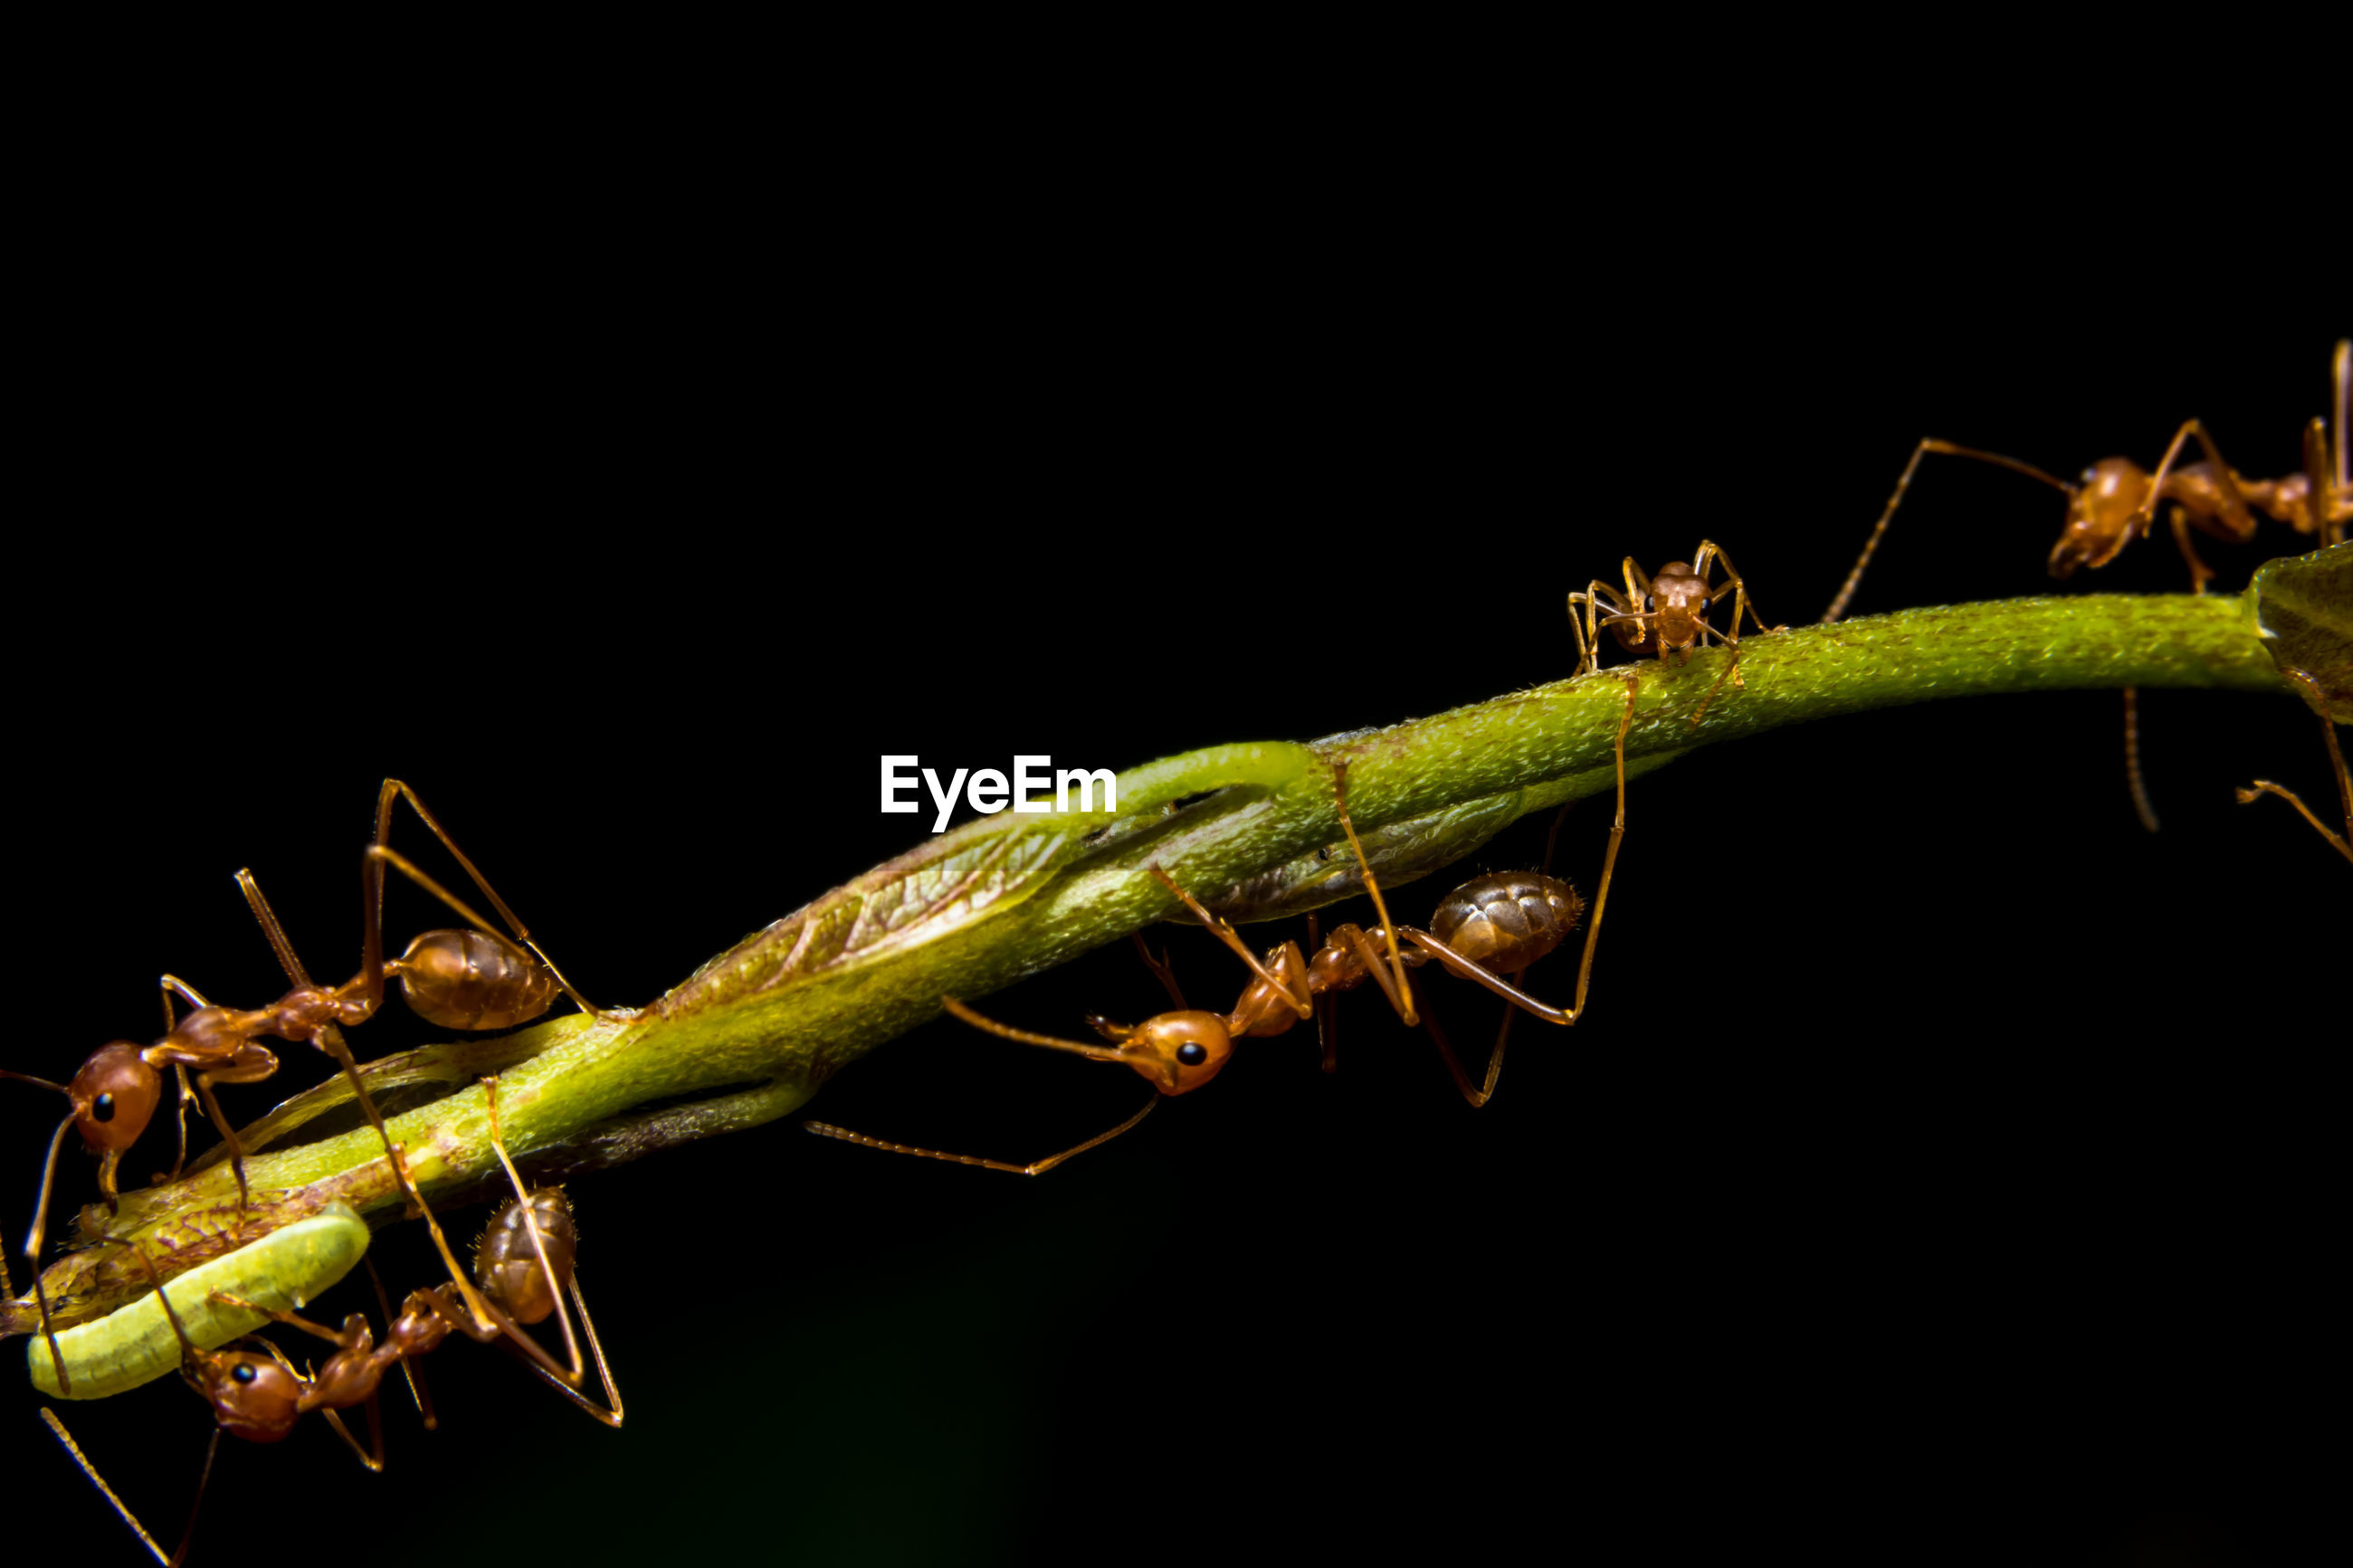 Red ants on twig against black background